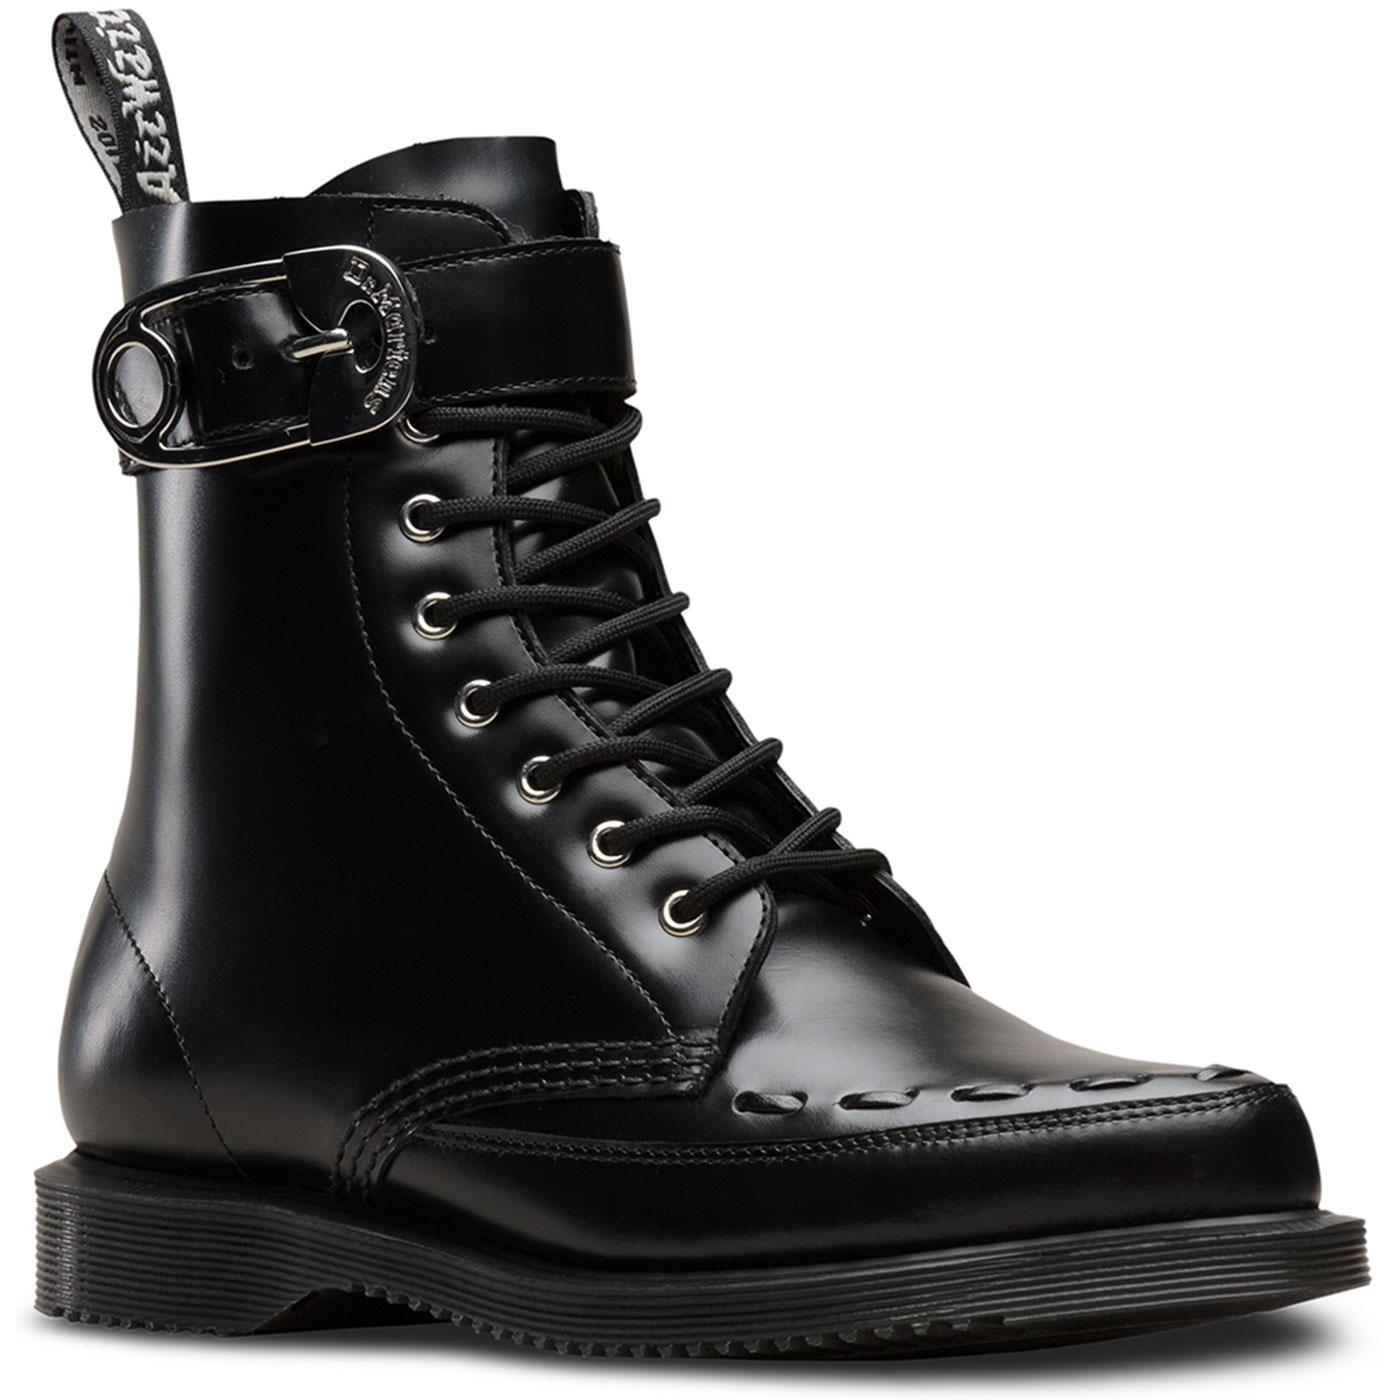 DR MARTENS Retro 70s Geordin Punk Safety Pin Boots